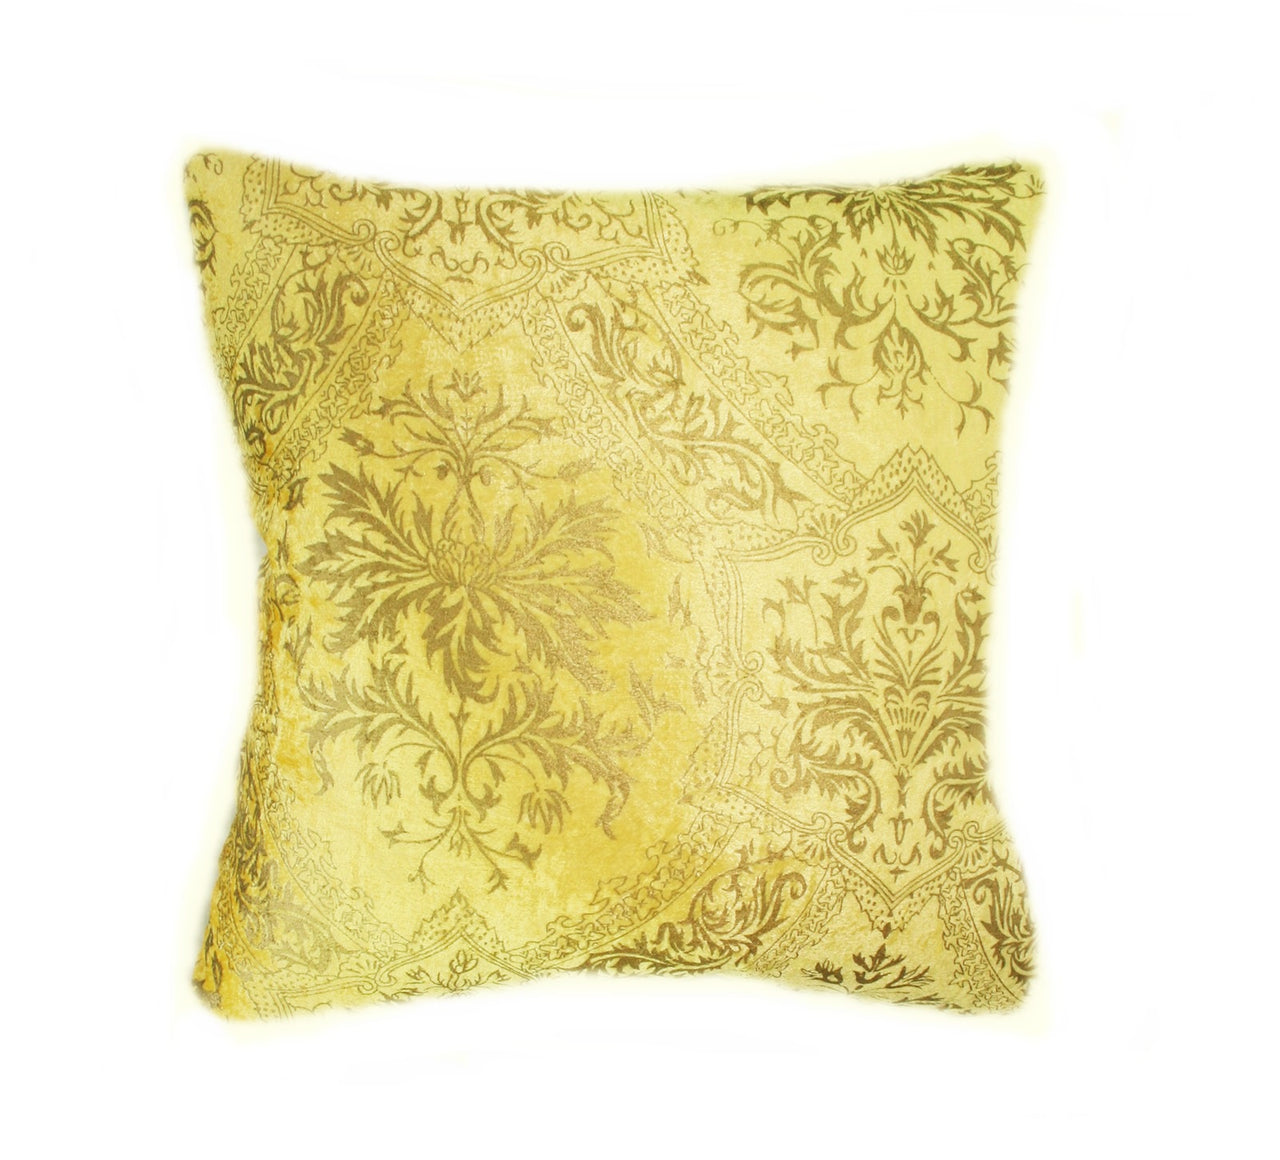 Stunning Yellow and Gold Venetian Velvet Pillow